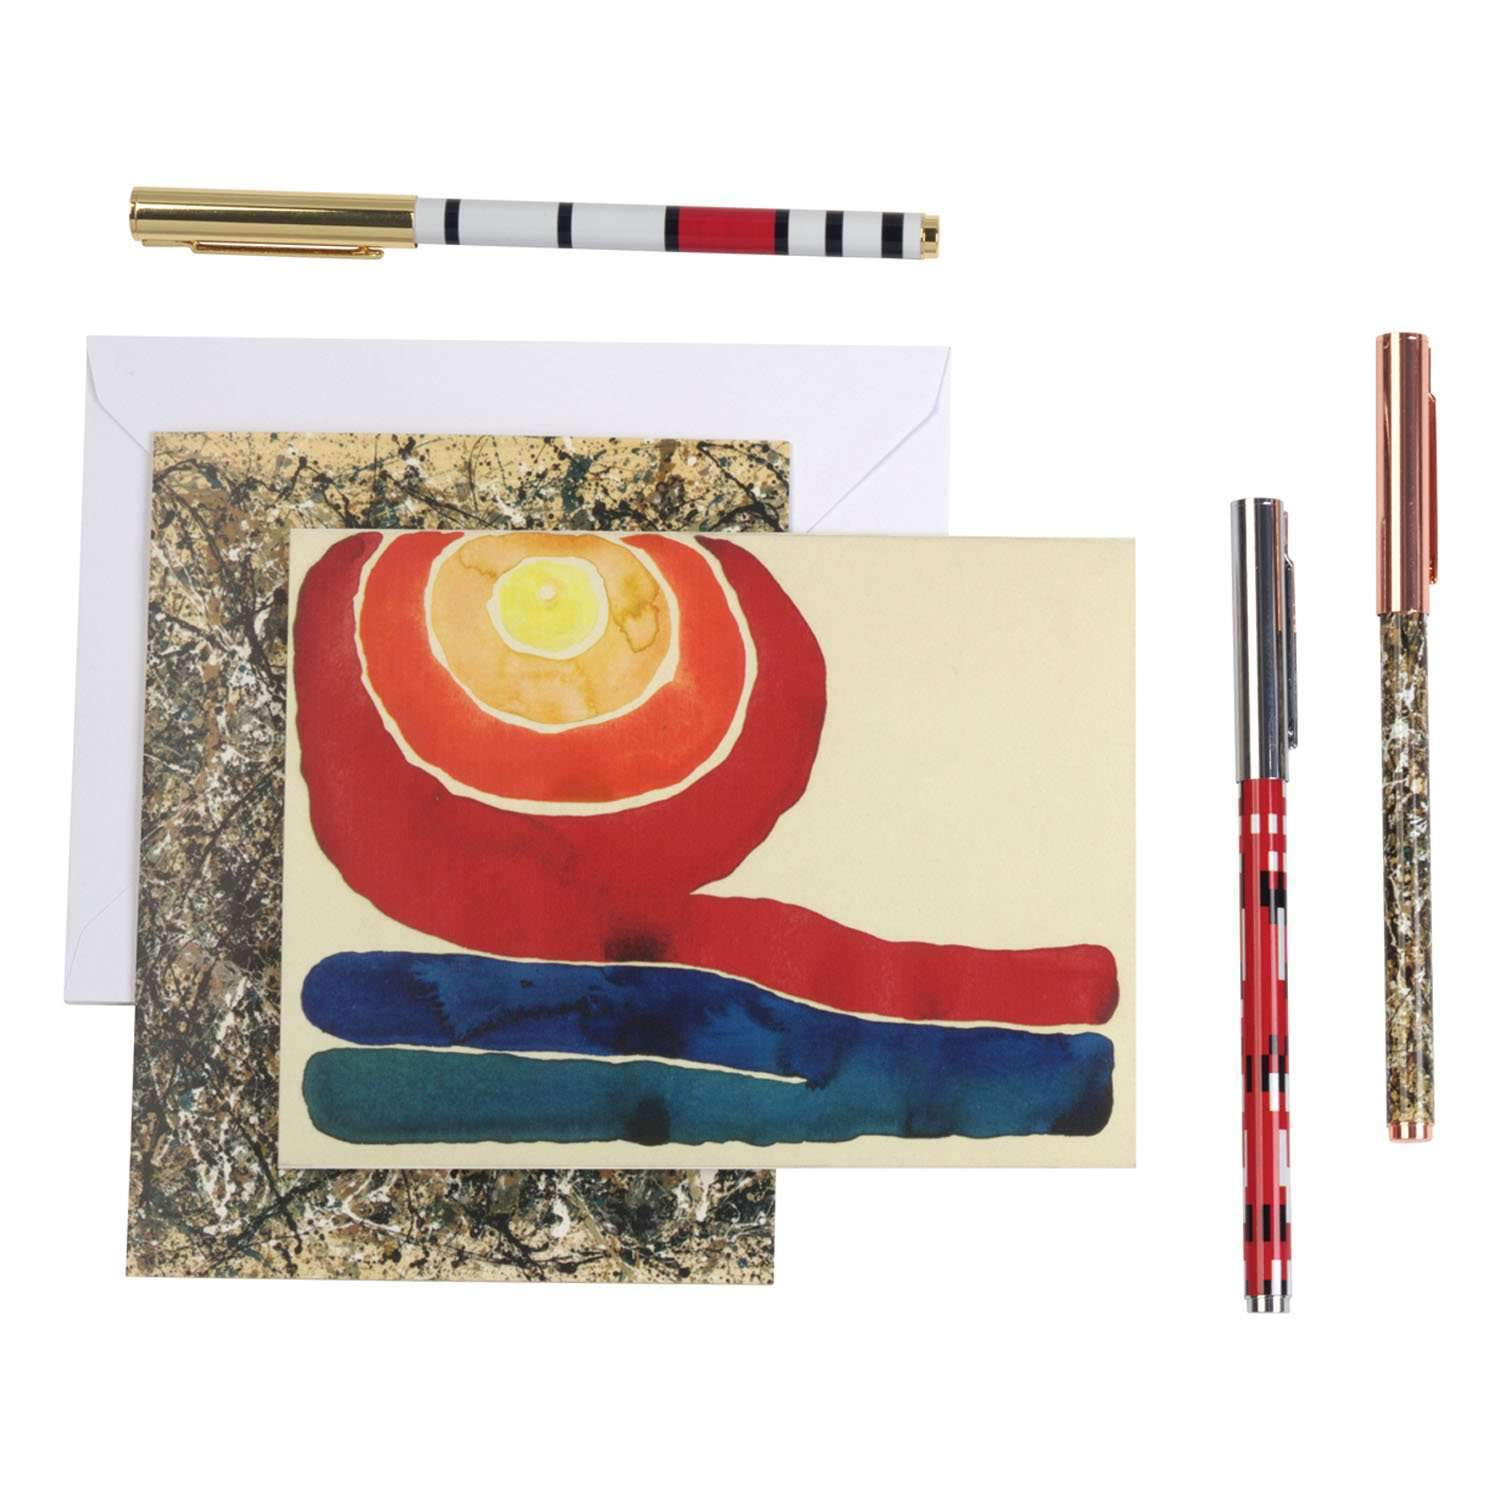 MoMA Abstraction Pen Set Pens and Pencils Galison